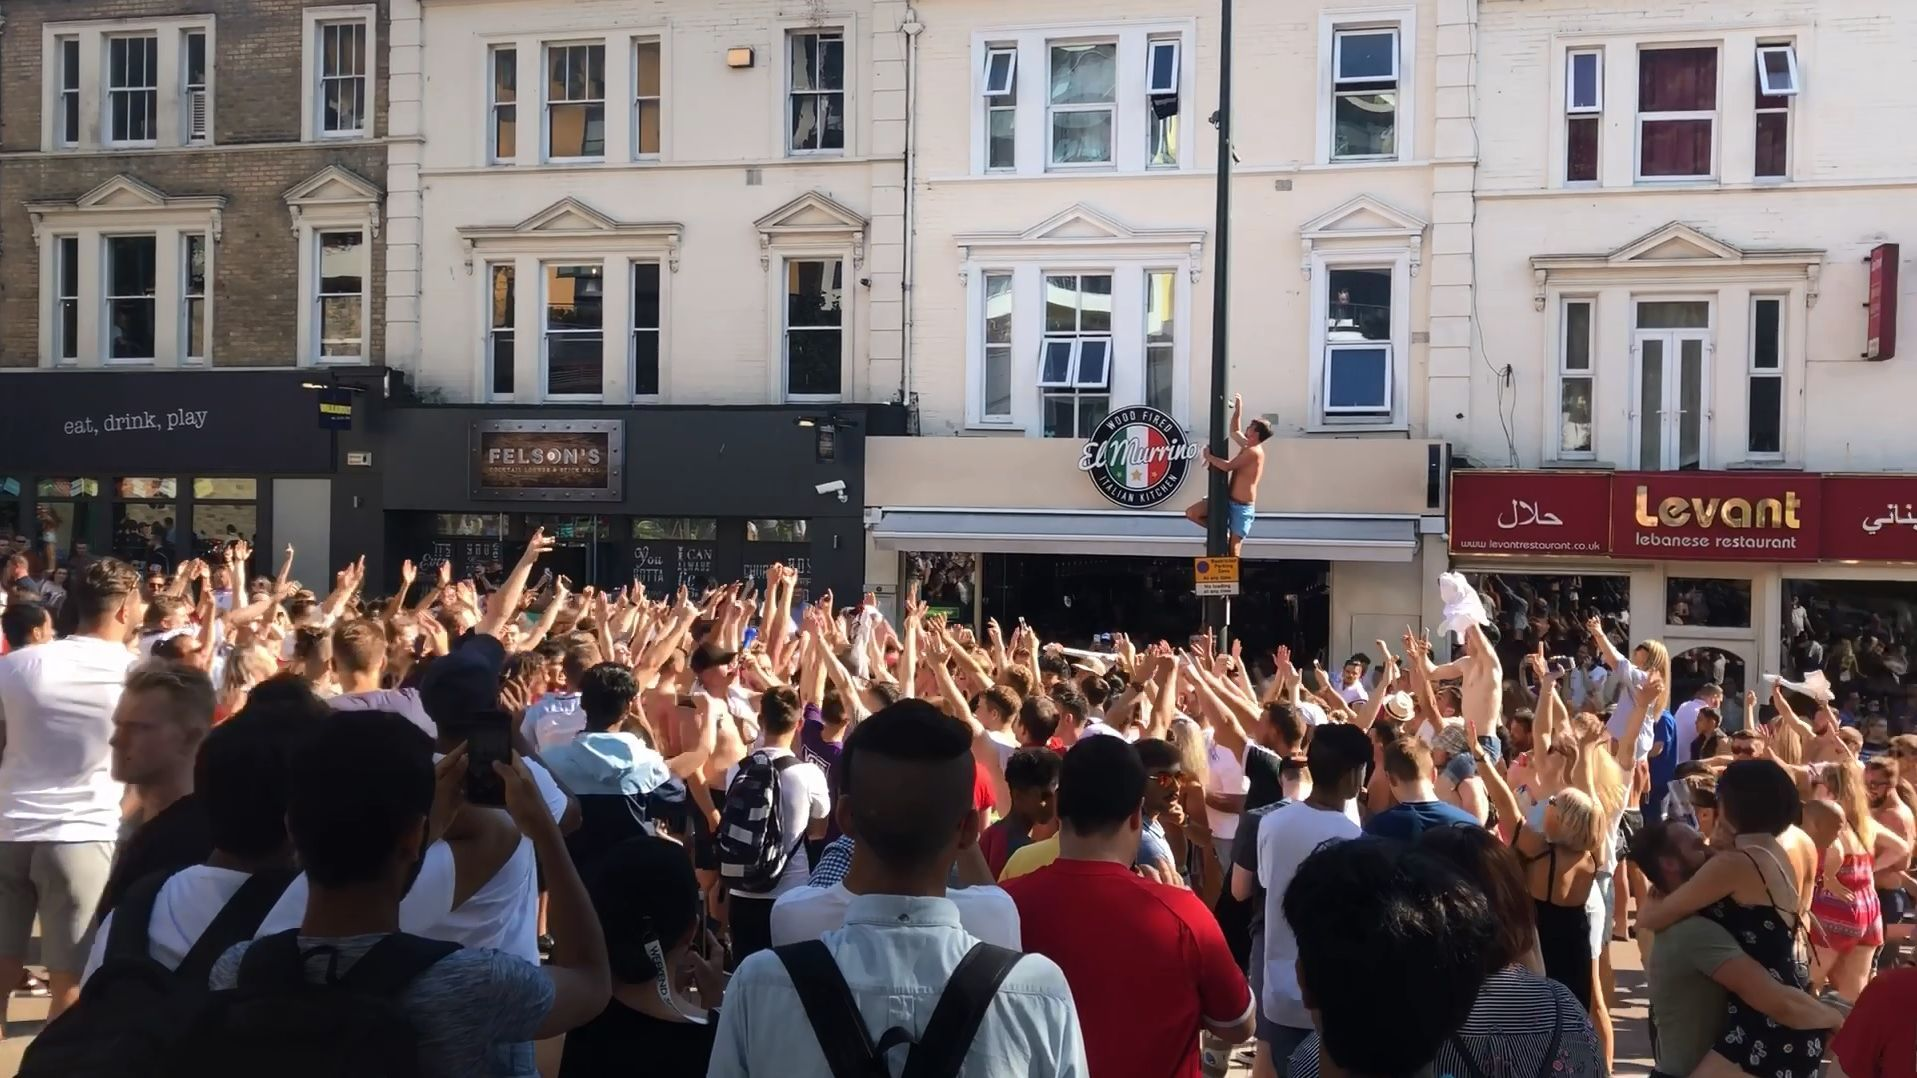 England fans celebrate quarter final success in Walkabout and out on Old Christchurch Road, Bournemouth